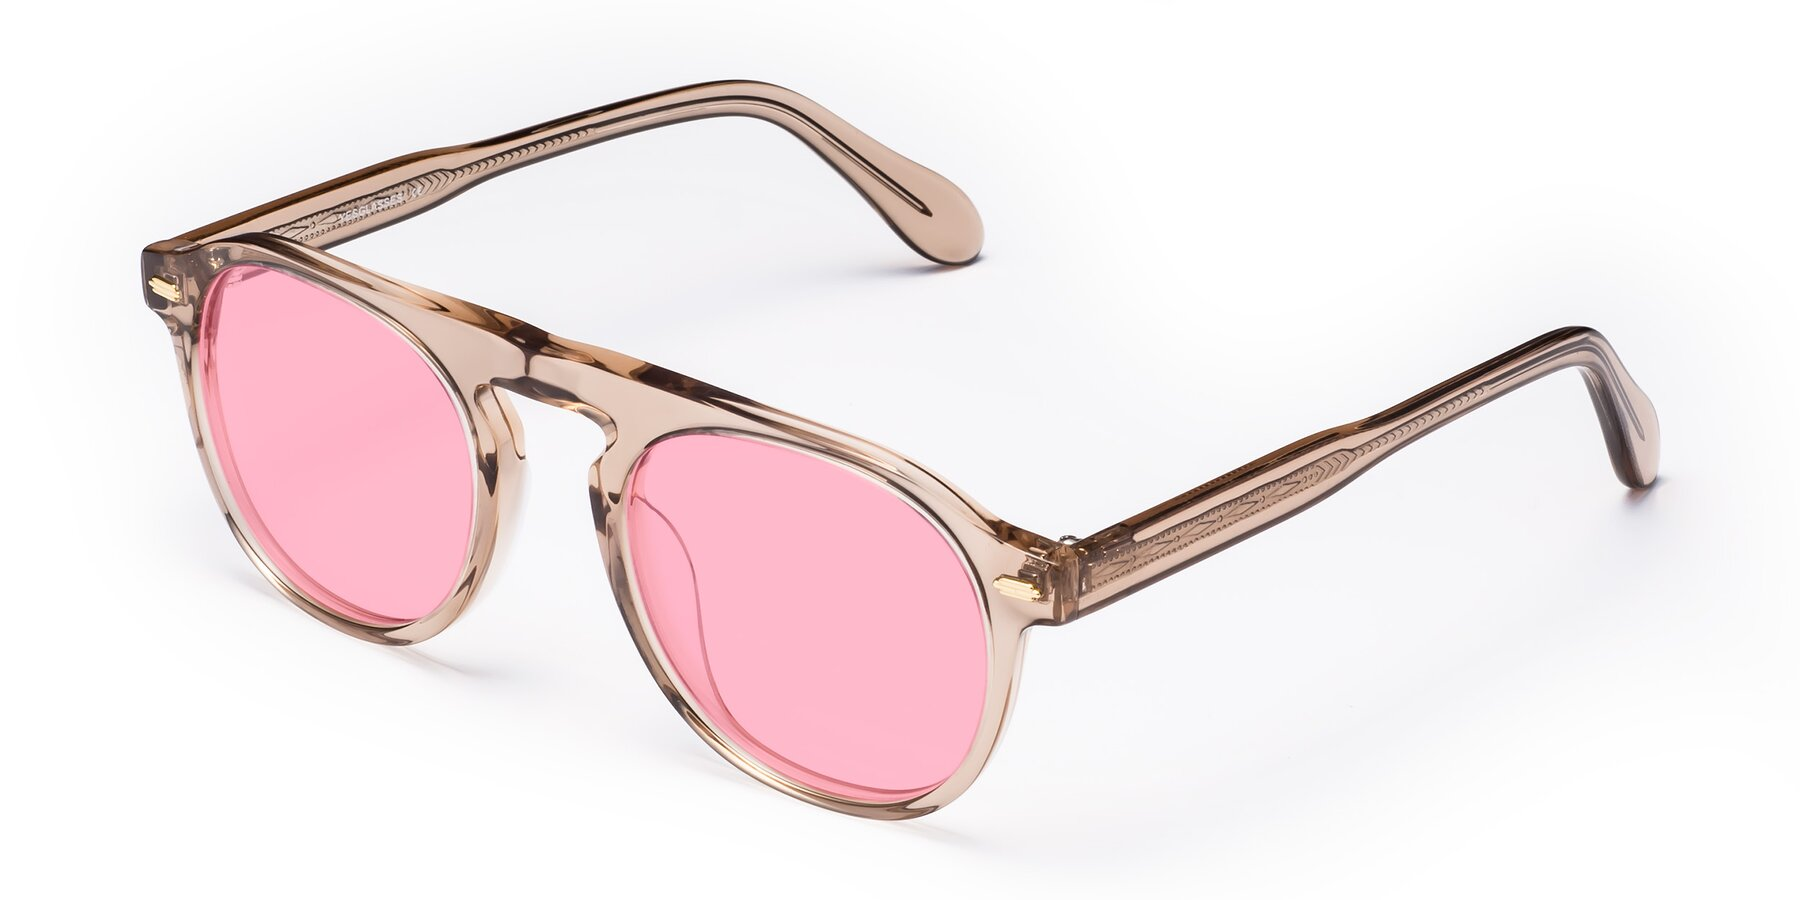 Angle of Mufasa in light Brown with Medium Pink Tinted Lenses